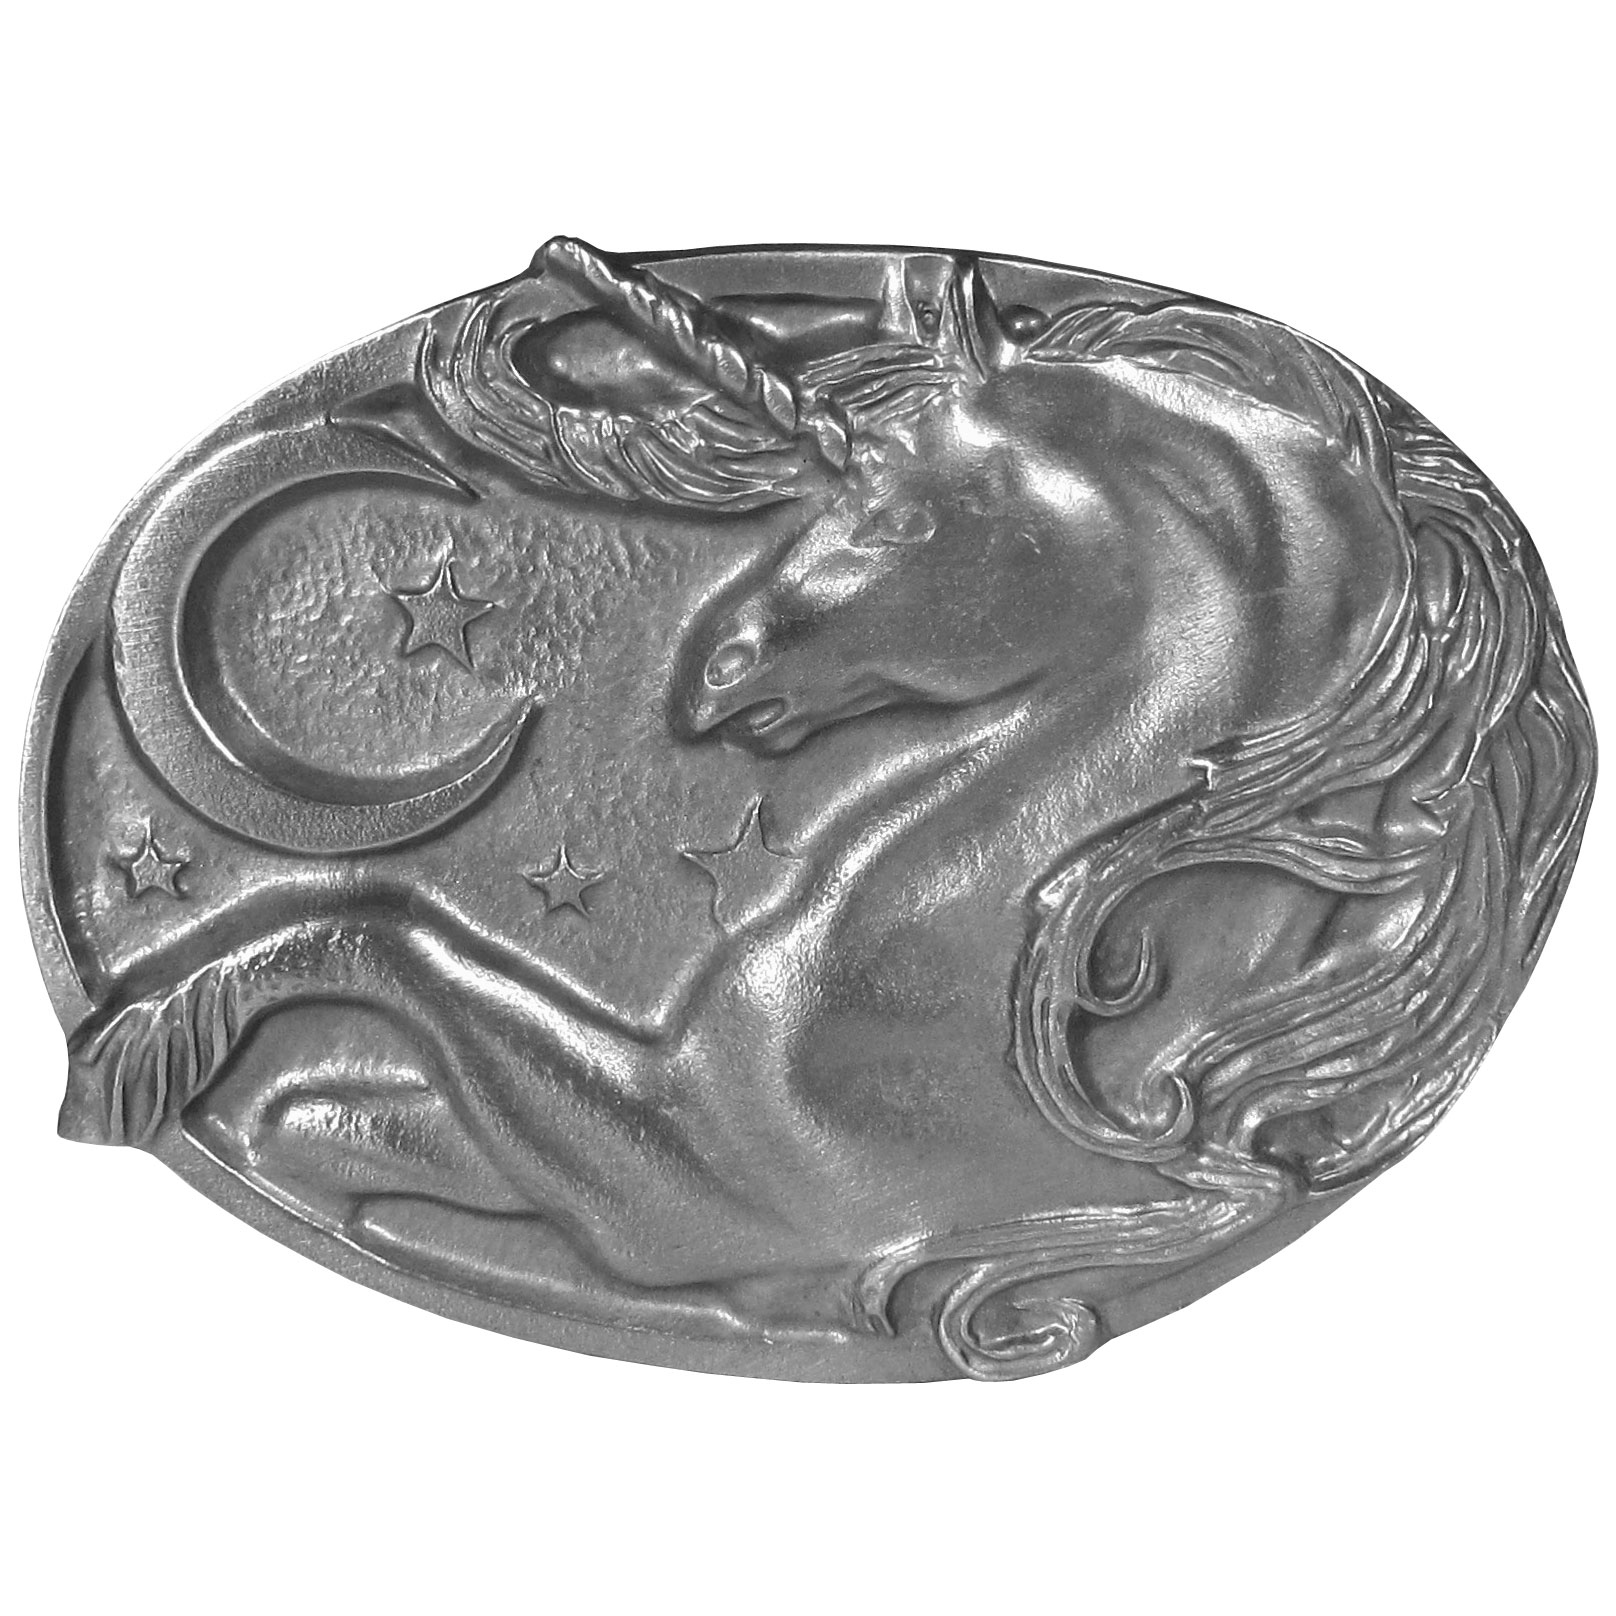 Unicorn Antiqued Belt Buckle - Finely sculpted and intricately designed belt buckle. Our unique designs often become collector's items.